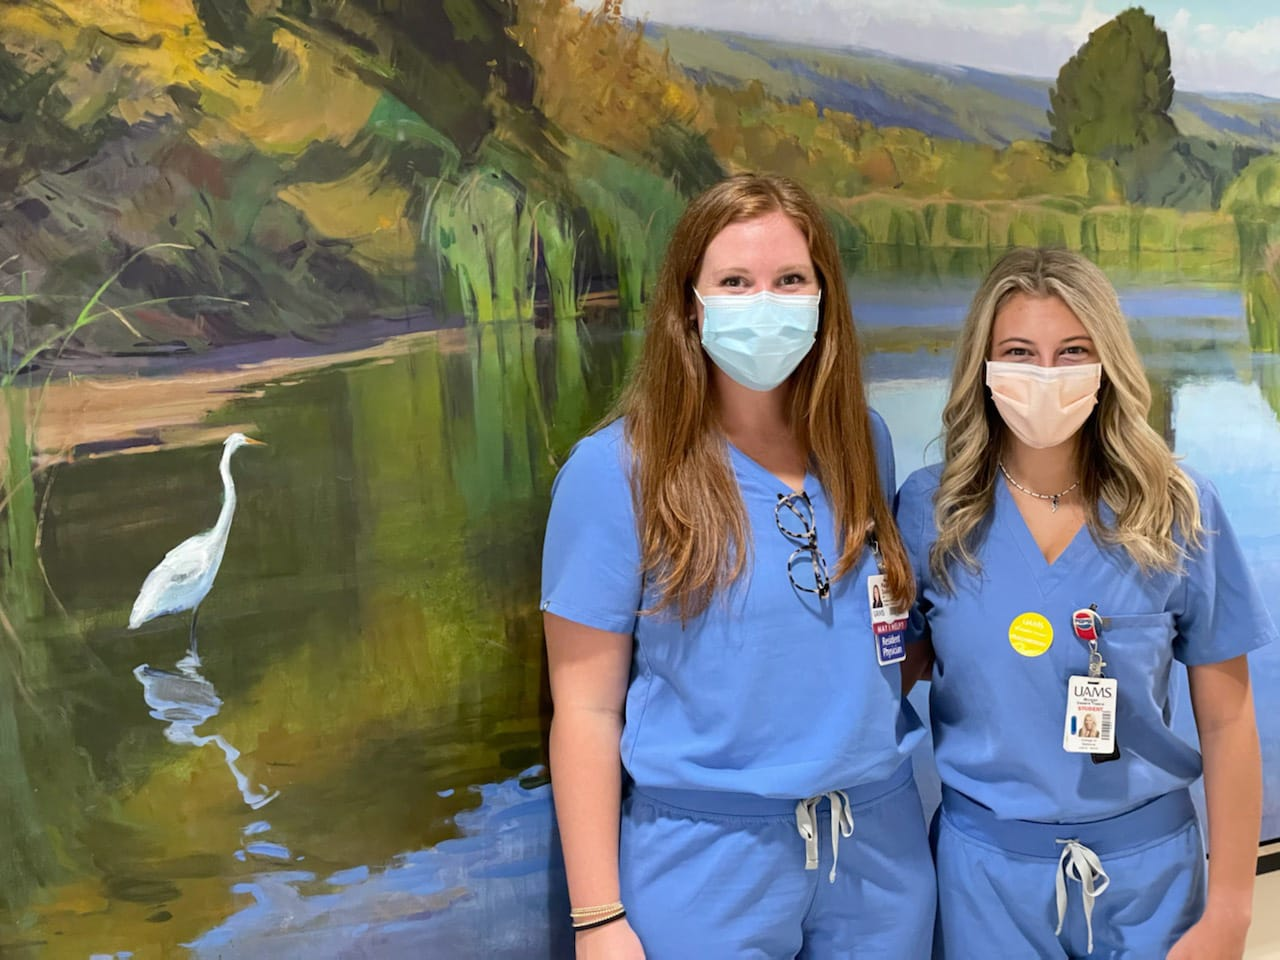 Paige Dailey, M.D., and Morgan Sweere